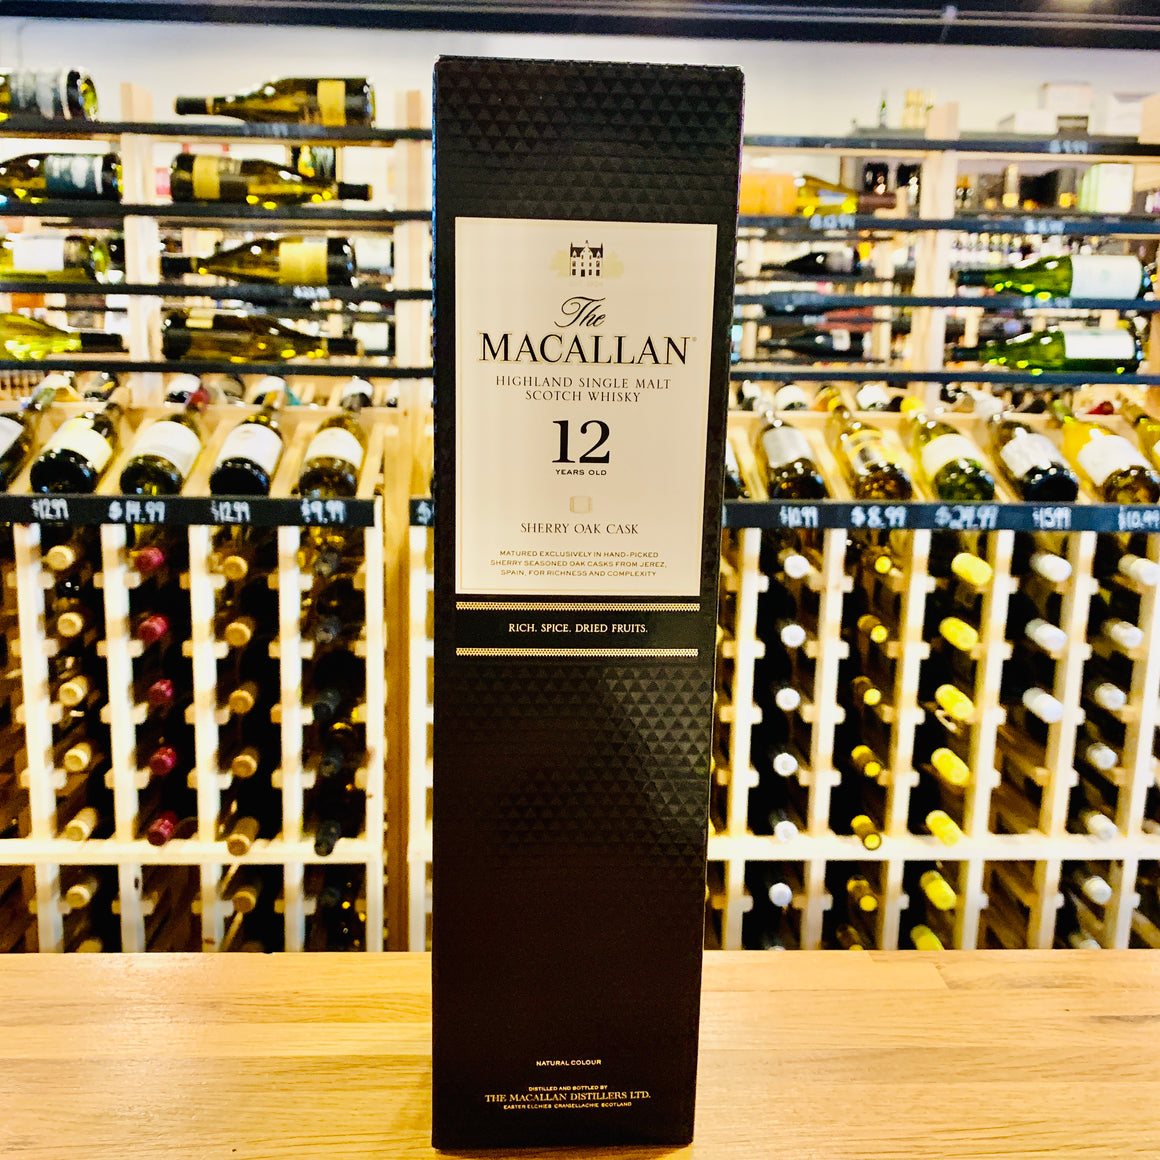 THE MACALLAN 12 YEAR SHERRY CASK SINGLE MALT SCOTCH WHISKY 750ML